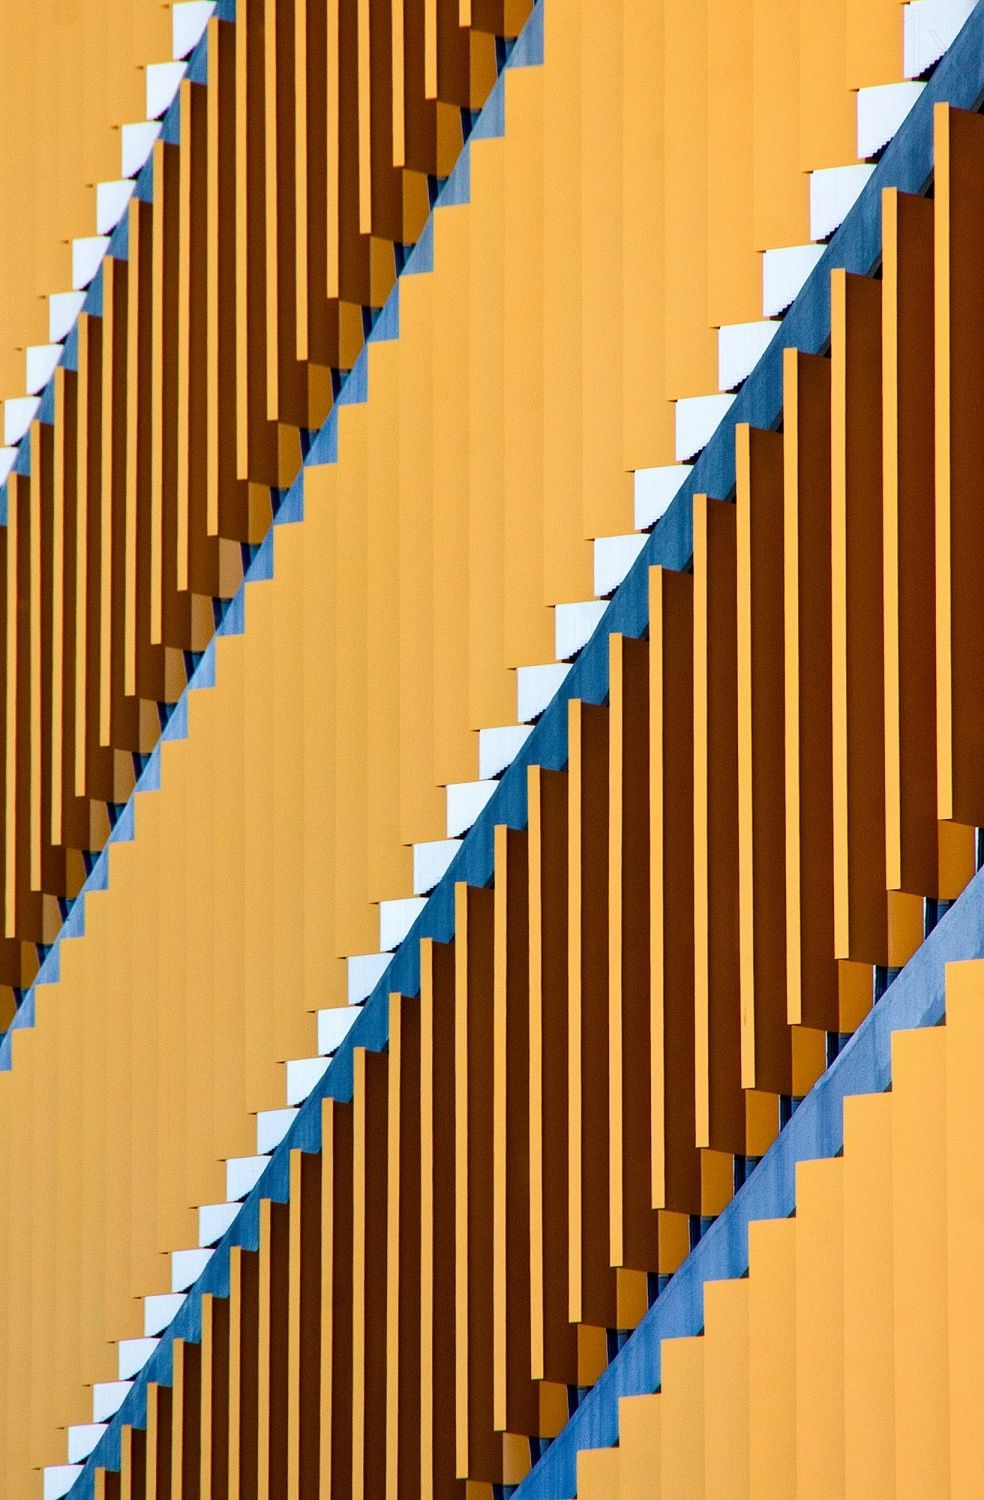 1X - Patterns in Architecture by Jacqueline Hammer